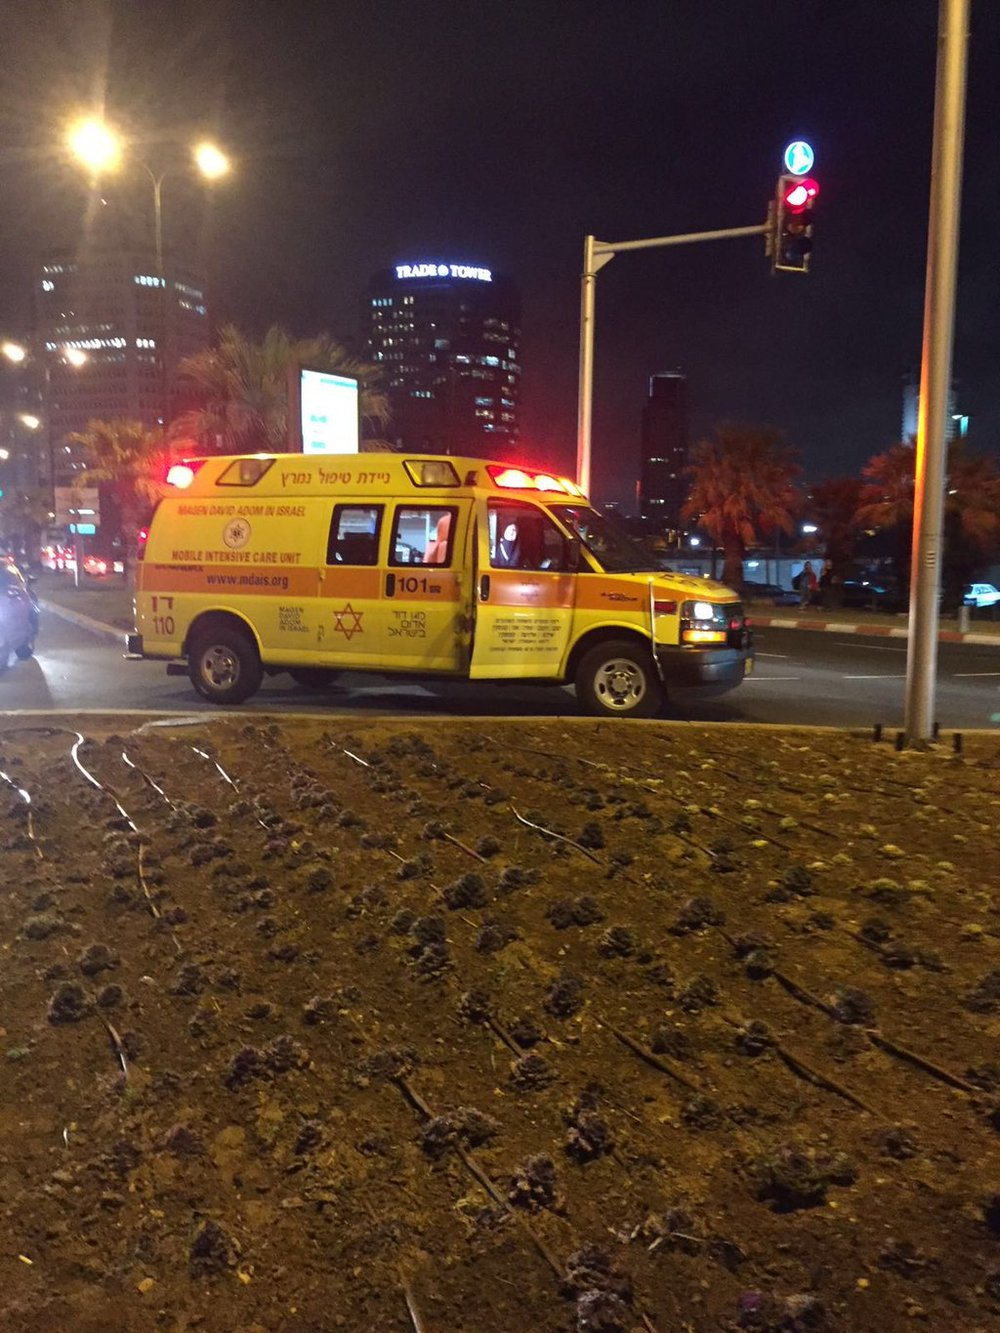 The Magen David Adom emergency response group responds to Tuesday's deadly stabbing spree in Jaffa, which killed an American tourist and injured 11 Israelis. Credit: Twitter.